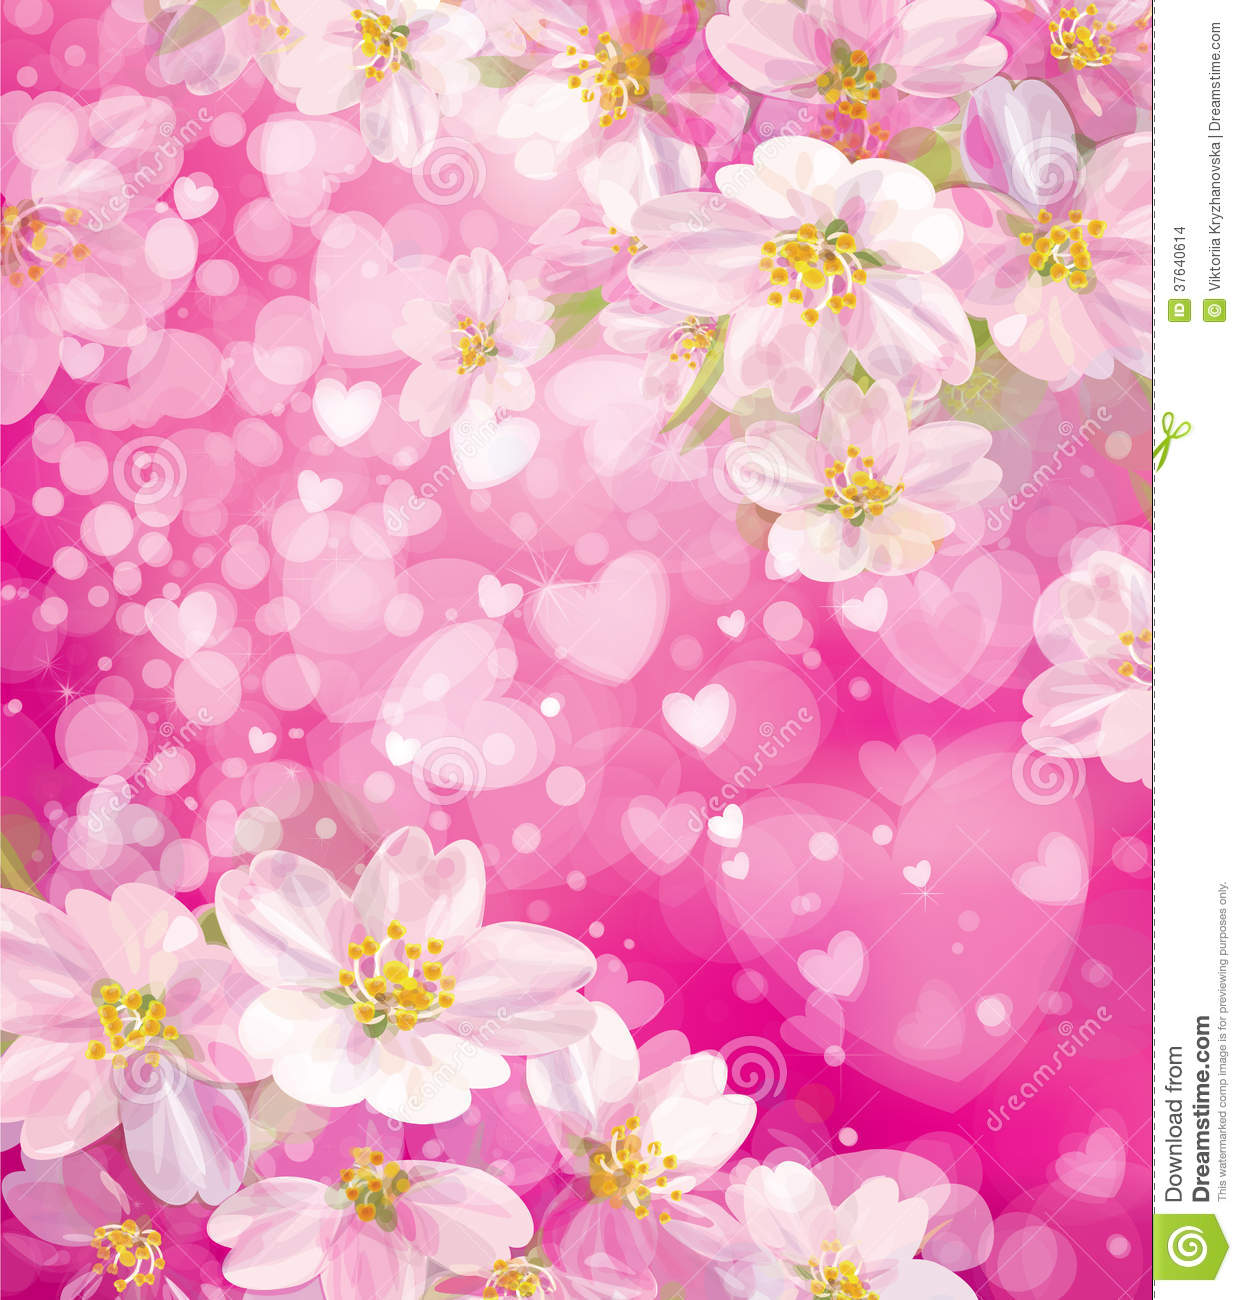 Vector Pink Background With Hearts And Flowers Stock Image